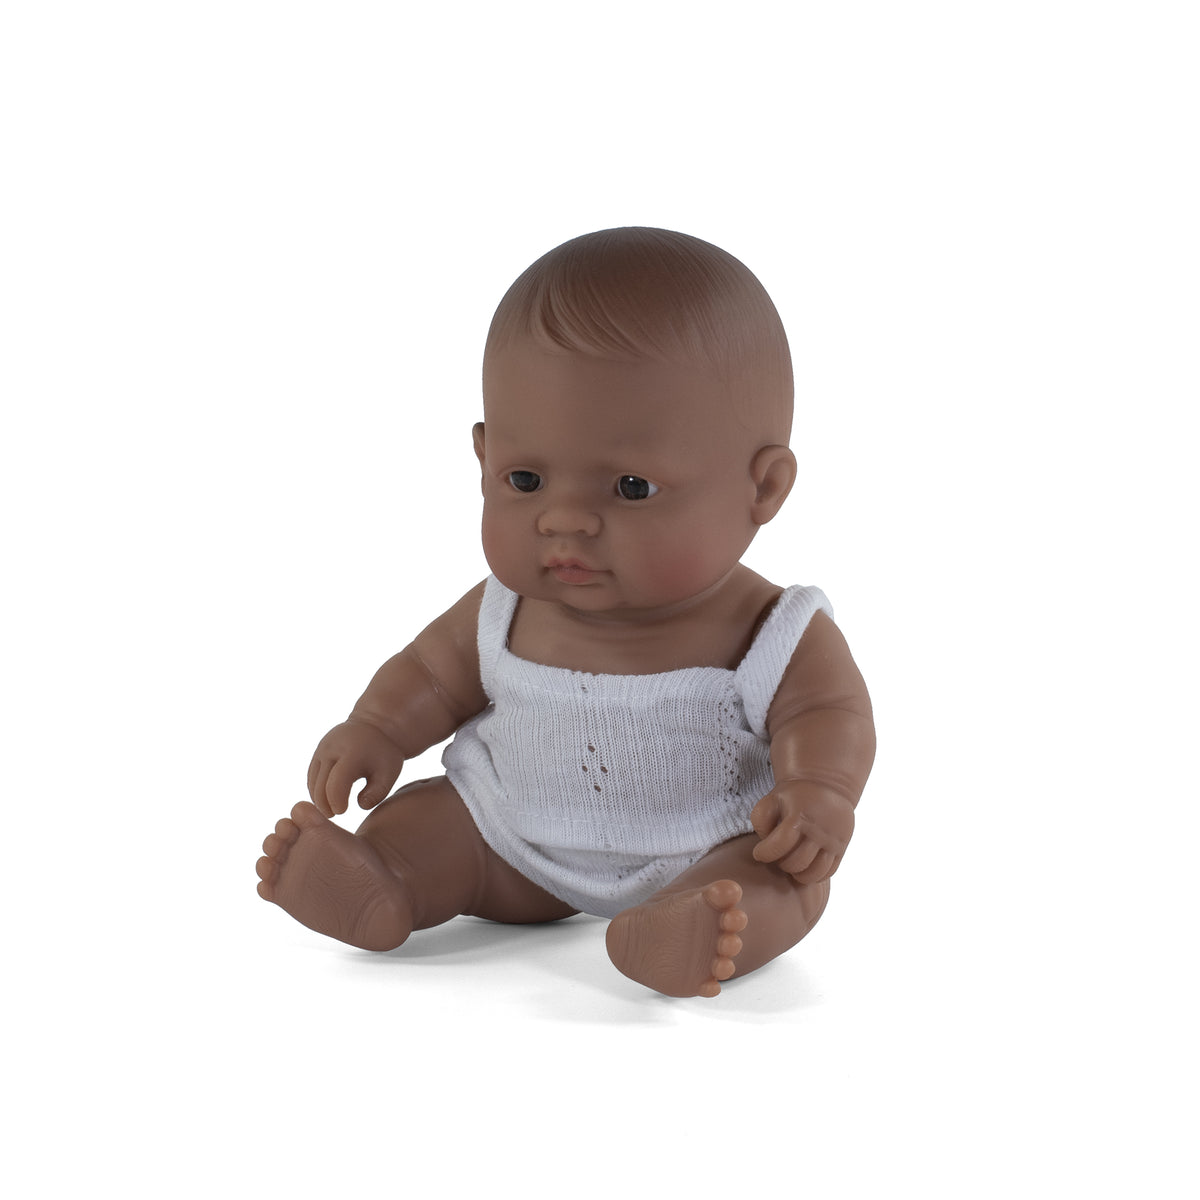 Anatomically Correct Doll | 21cm - Hispanic Girl